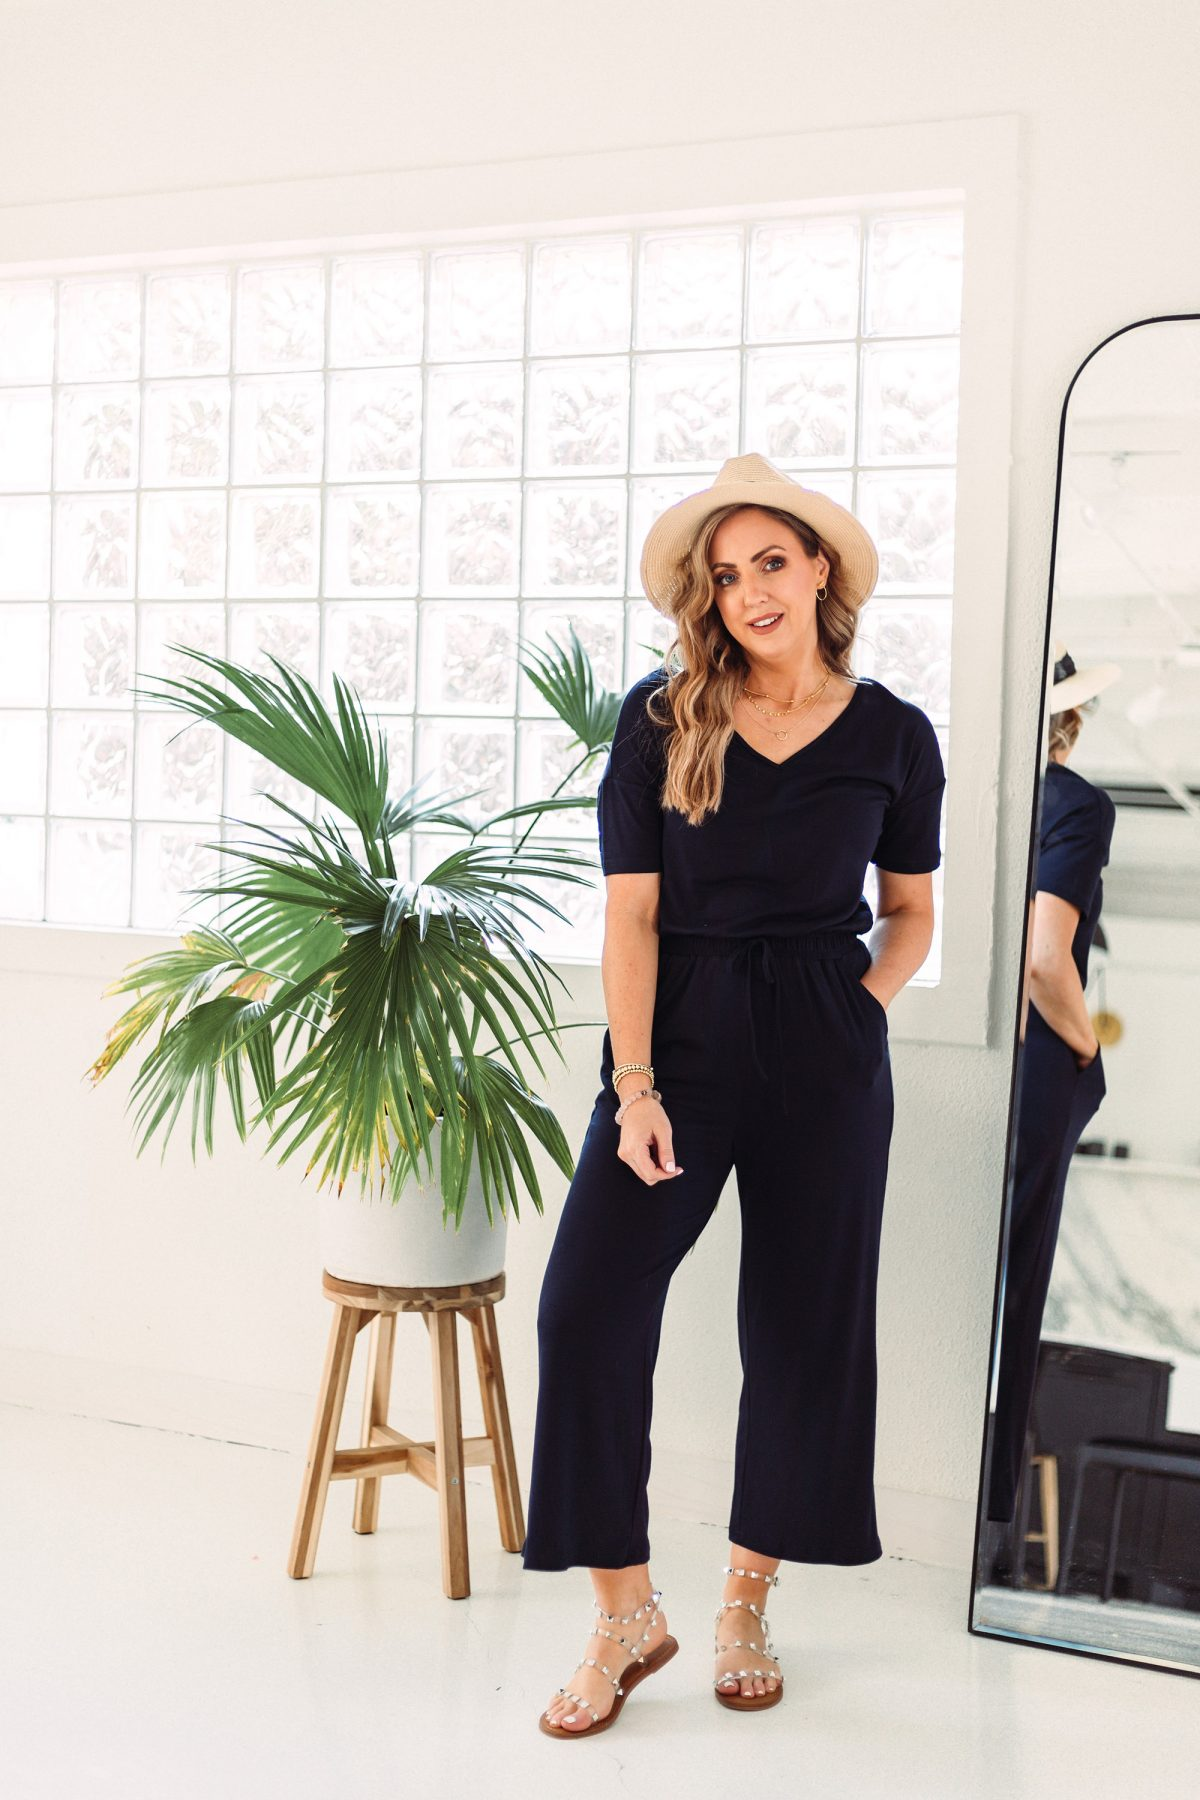 Texas influencer Meg O. shares Amazon fashion basics for spring and summer 2021 - this navy wide leg cropped jumpsuit is flattering and comfy!